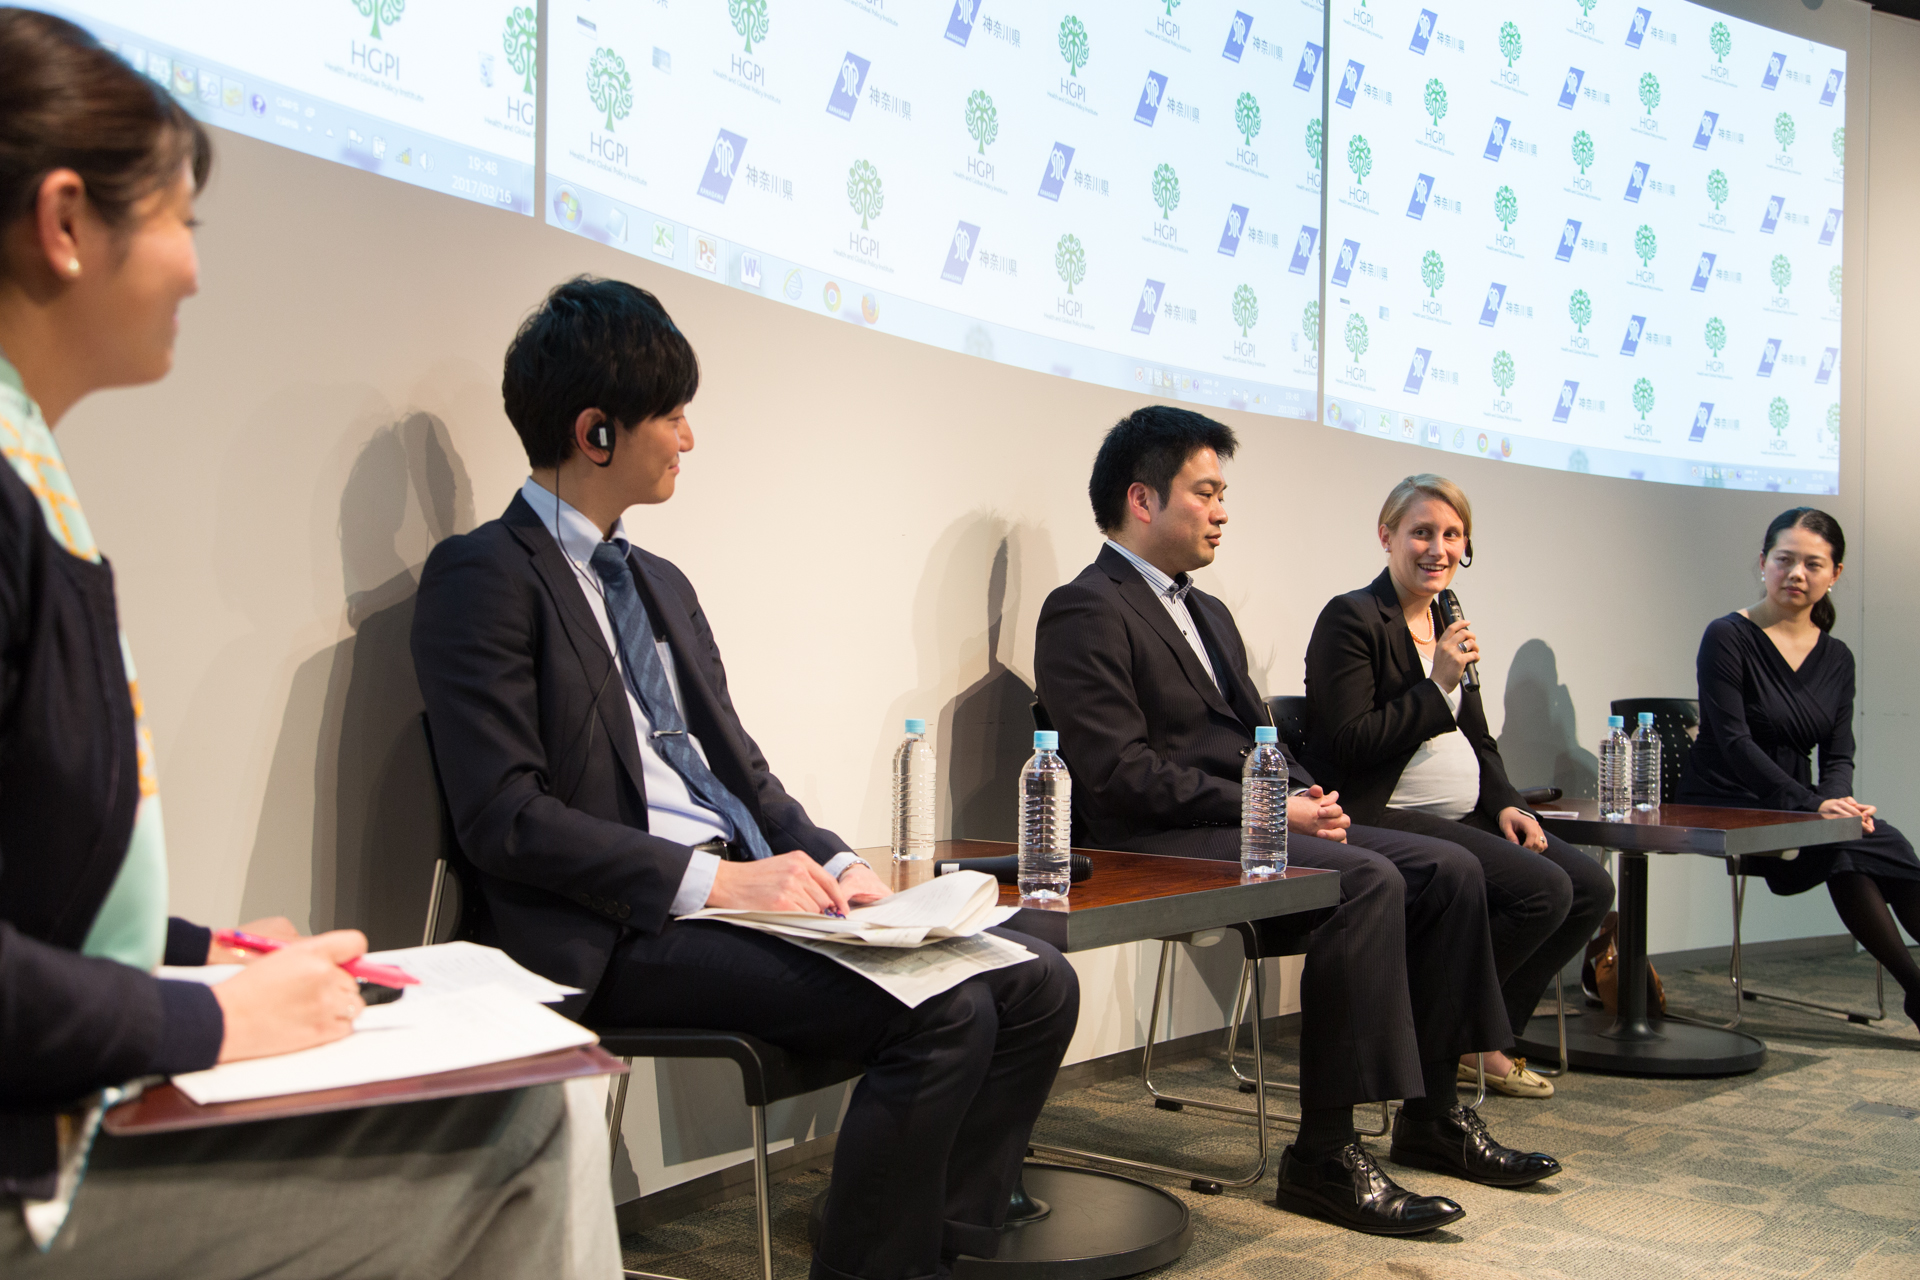 [Event Report] Kanagawa Medical Innovation School: Evening Seminar – Global Health Experts to Lead Health Innovations – (March 16, 2017)